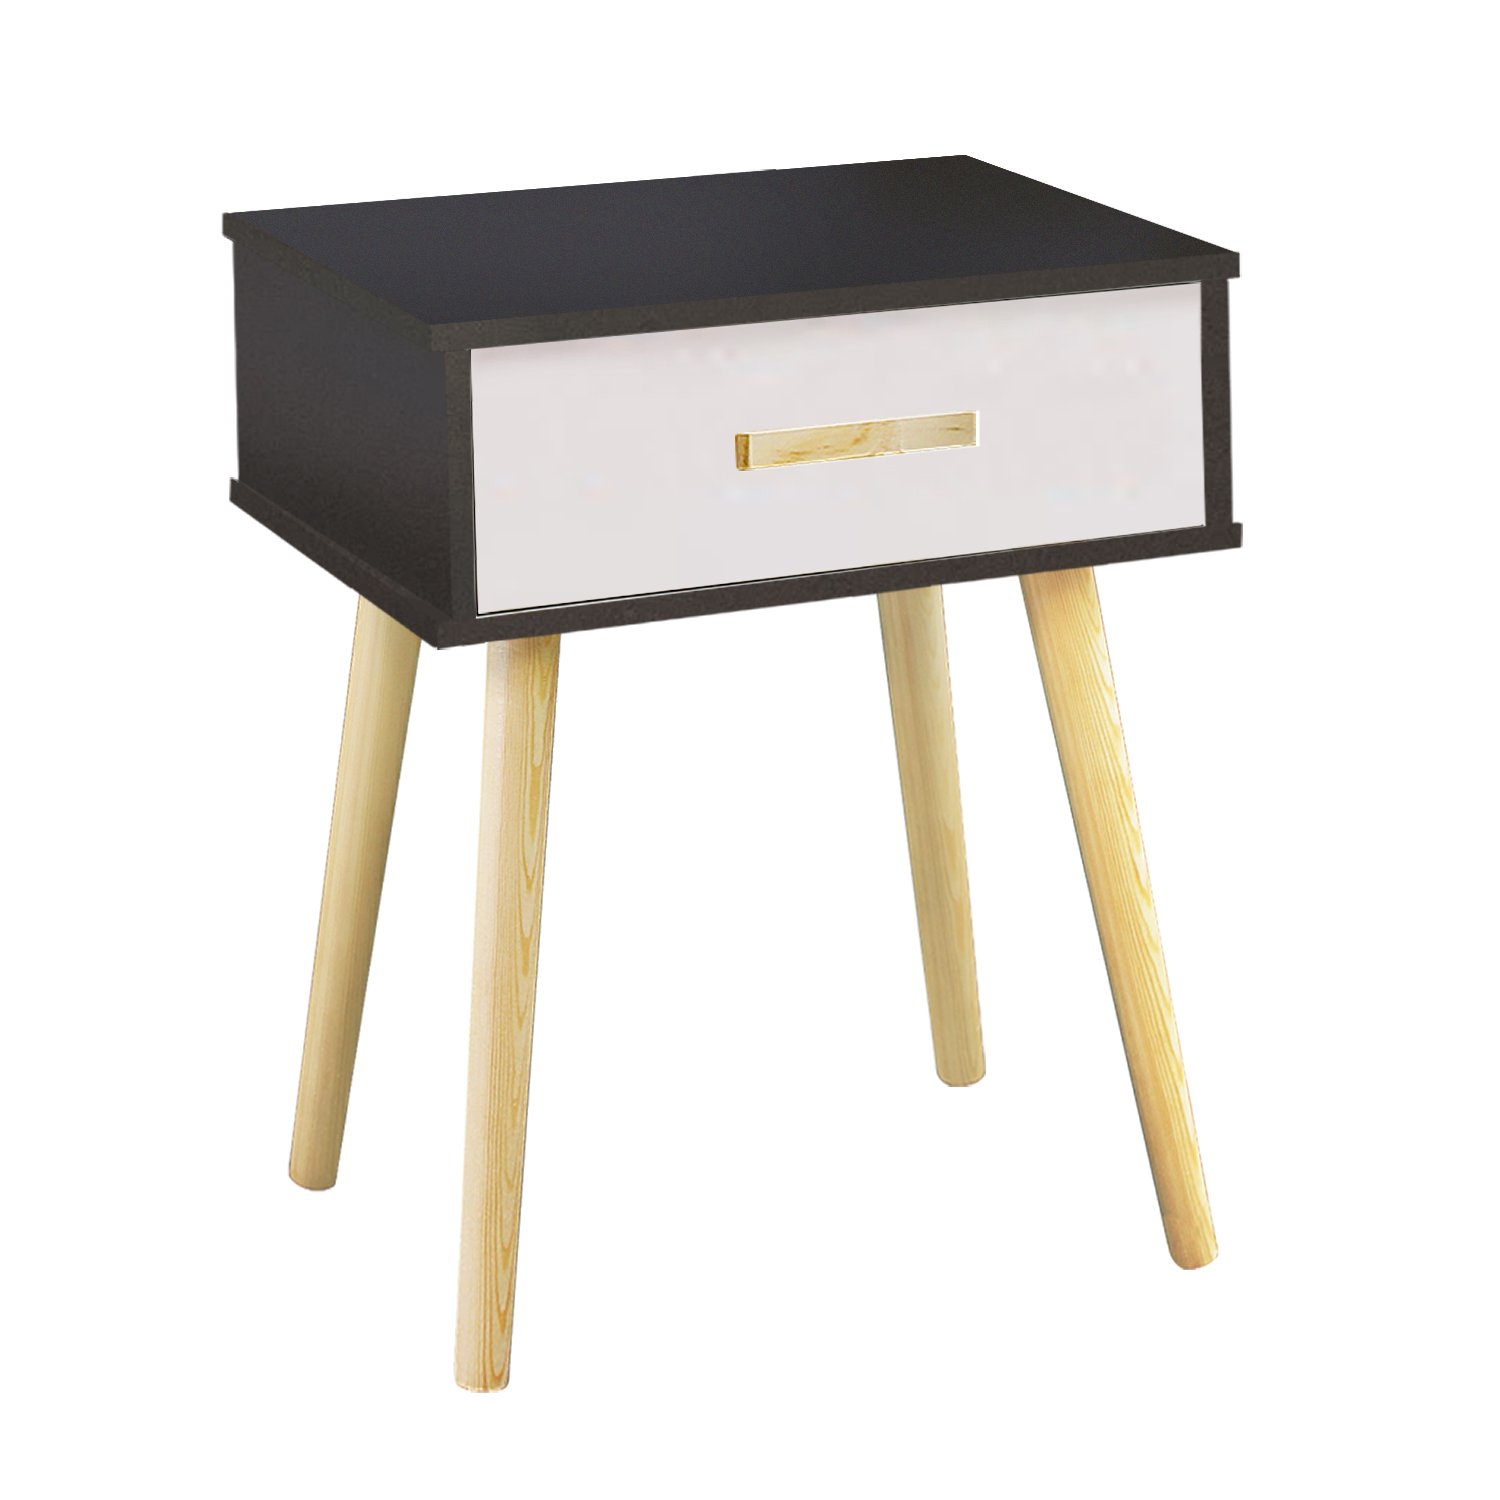 Navy & White With 1 Tier DL furniture Furniture004 Side End Nightstand Bedroom Livingroom Table Cabinet 2 Drawers   Natural Wood & White, Tiers